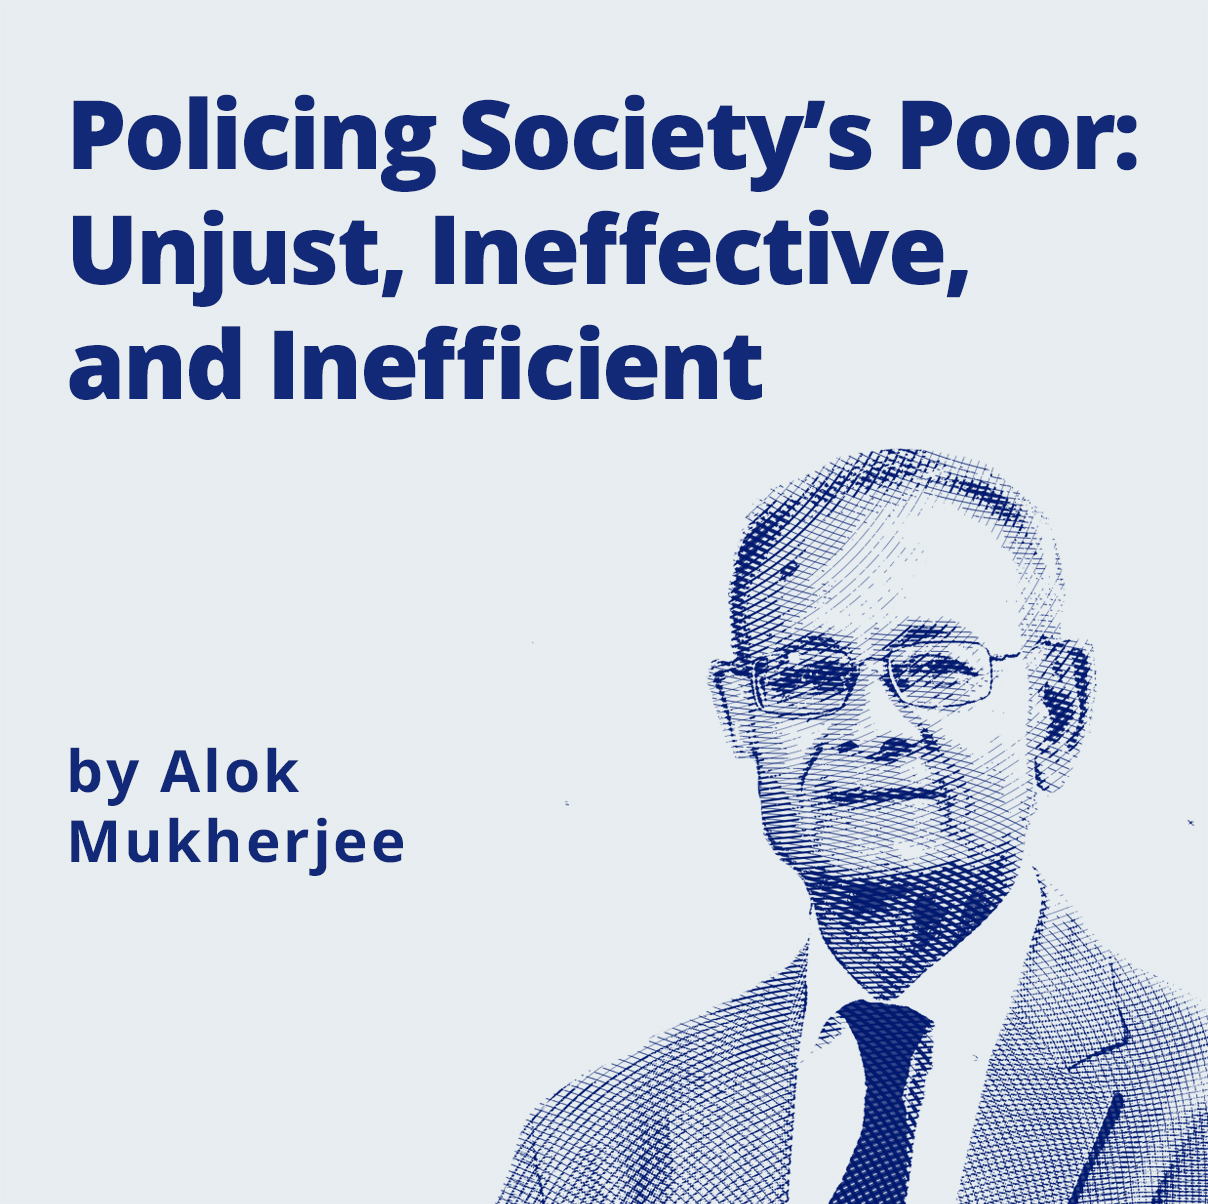 Image -  Policing Society's Poor: Unjust, Ineffective, and Inefficient by Alok Mukherjee